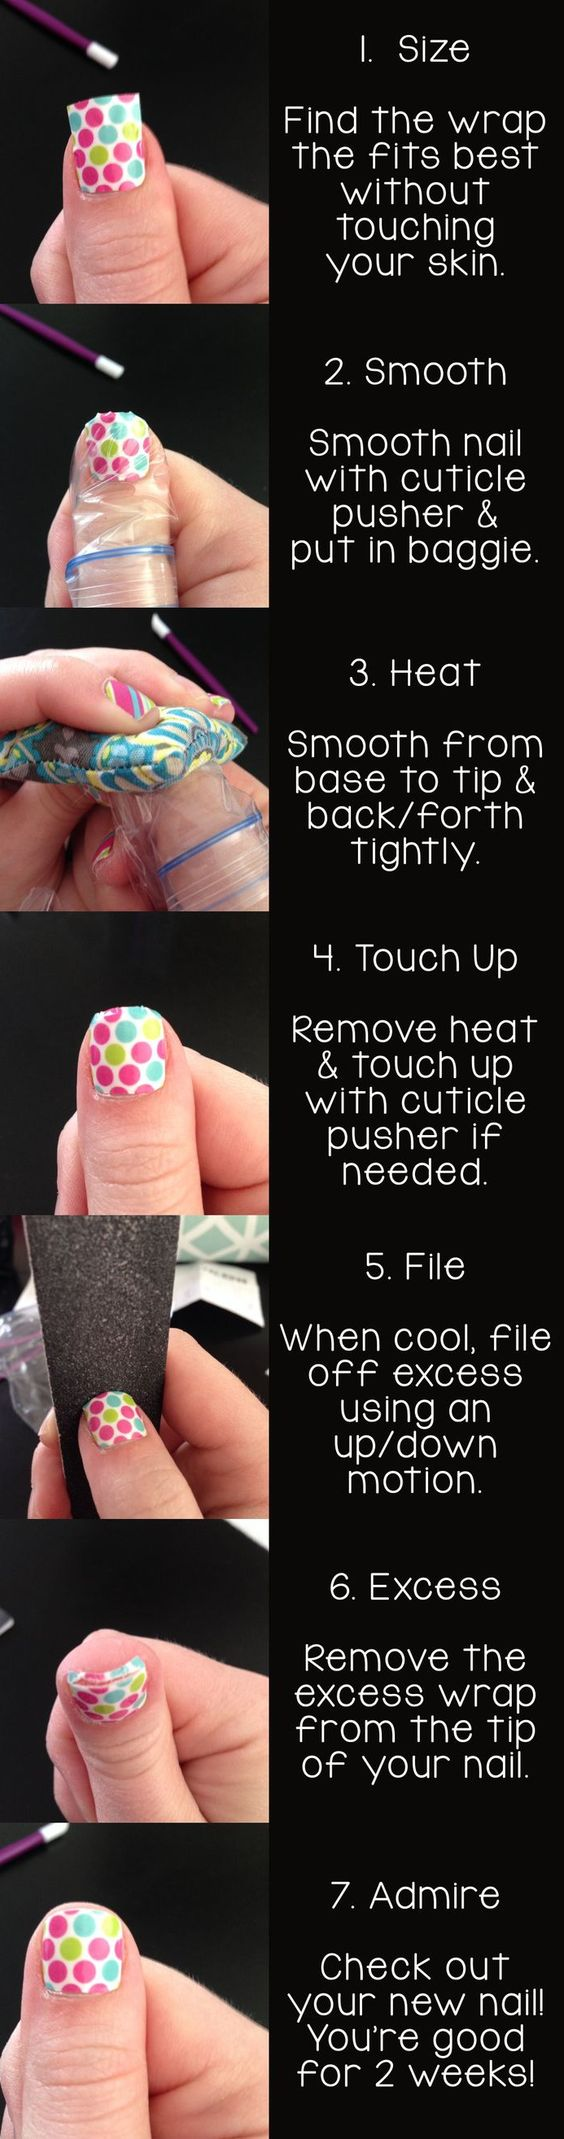 So THIS is how you apply Jambery nails! Ohhhhhhhhh. Cool! Check out my website to see all the designs!